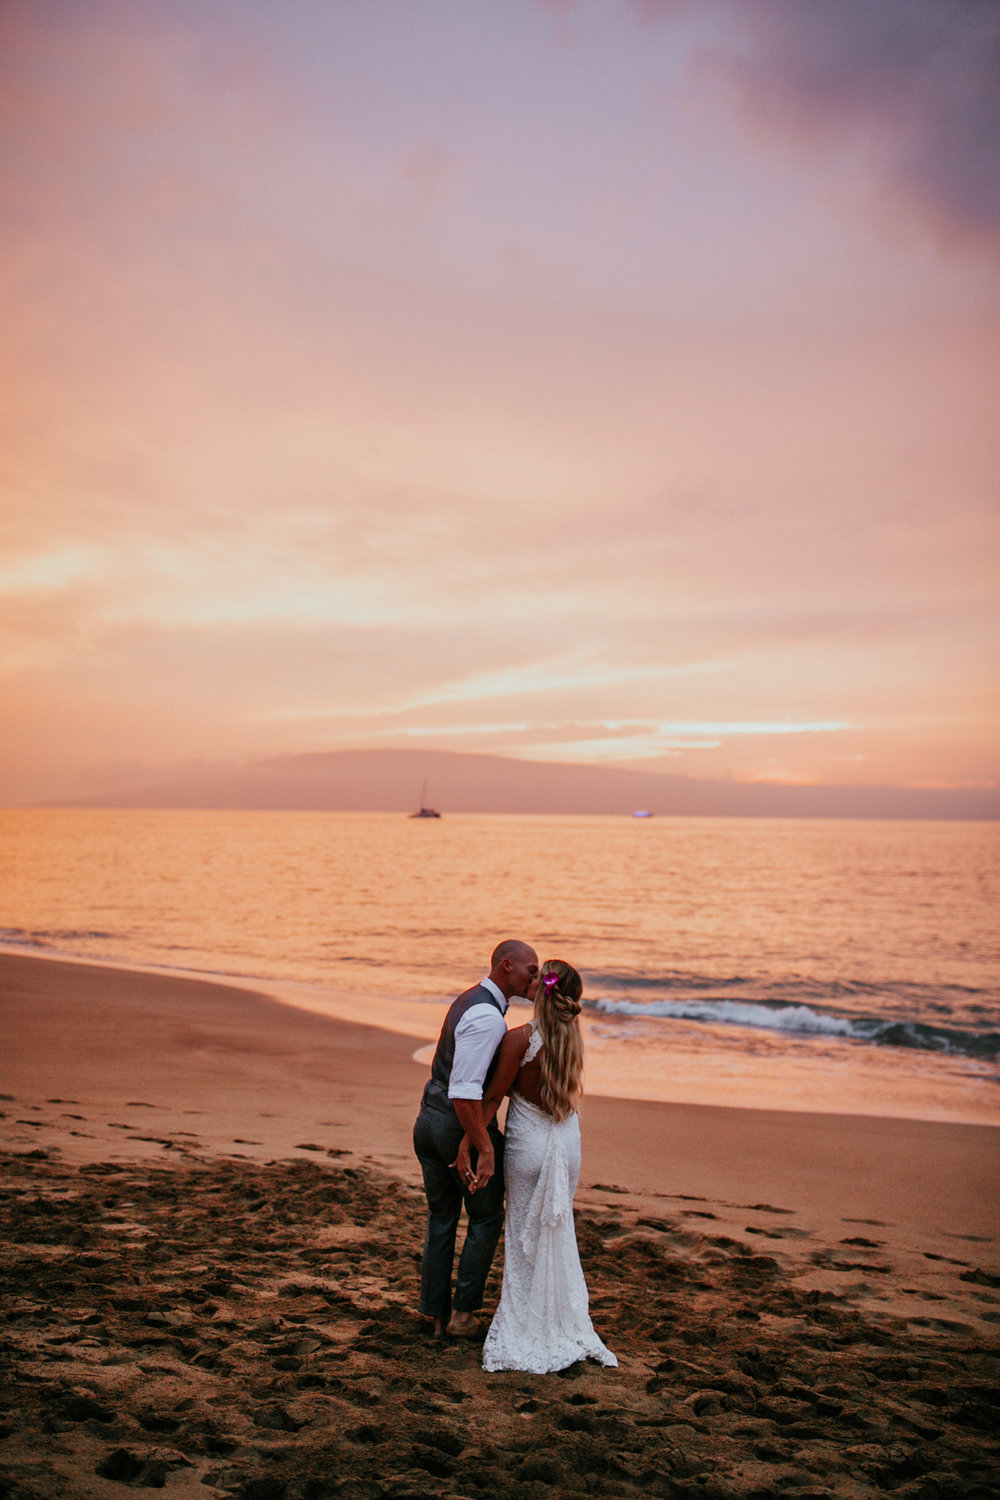 destination-wedding-photographer-hawaii-maui-elopement-106.jpg